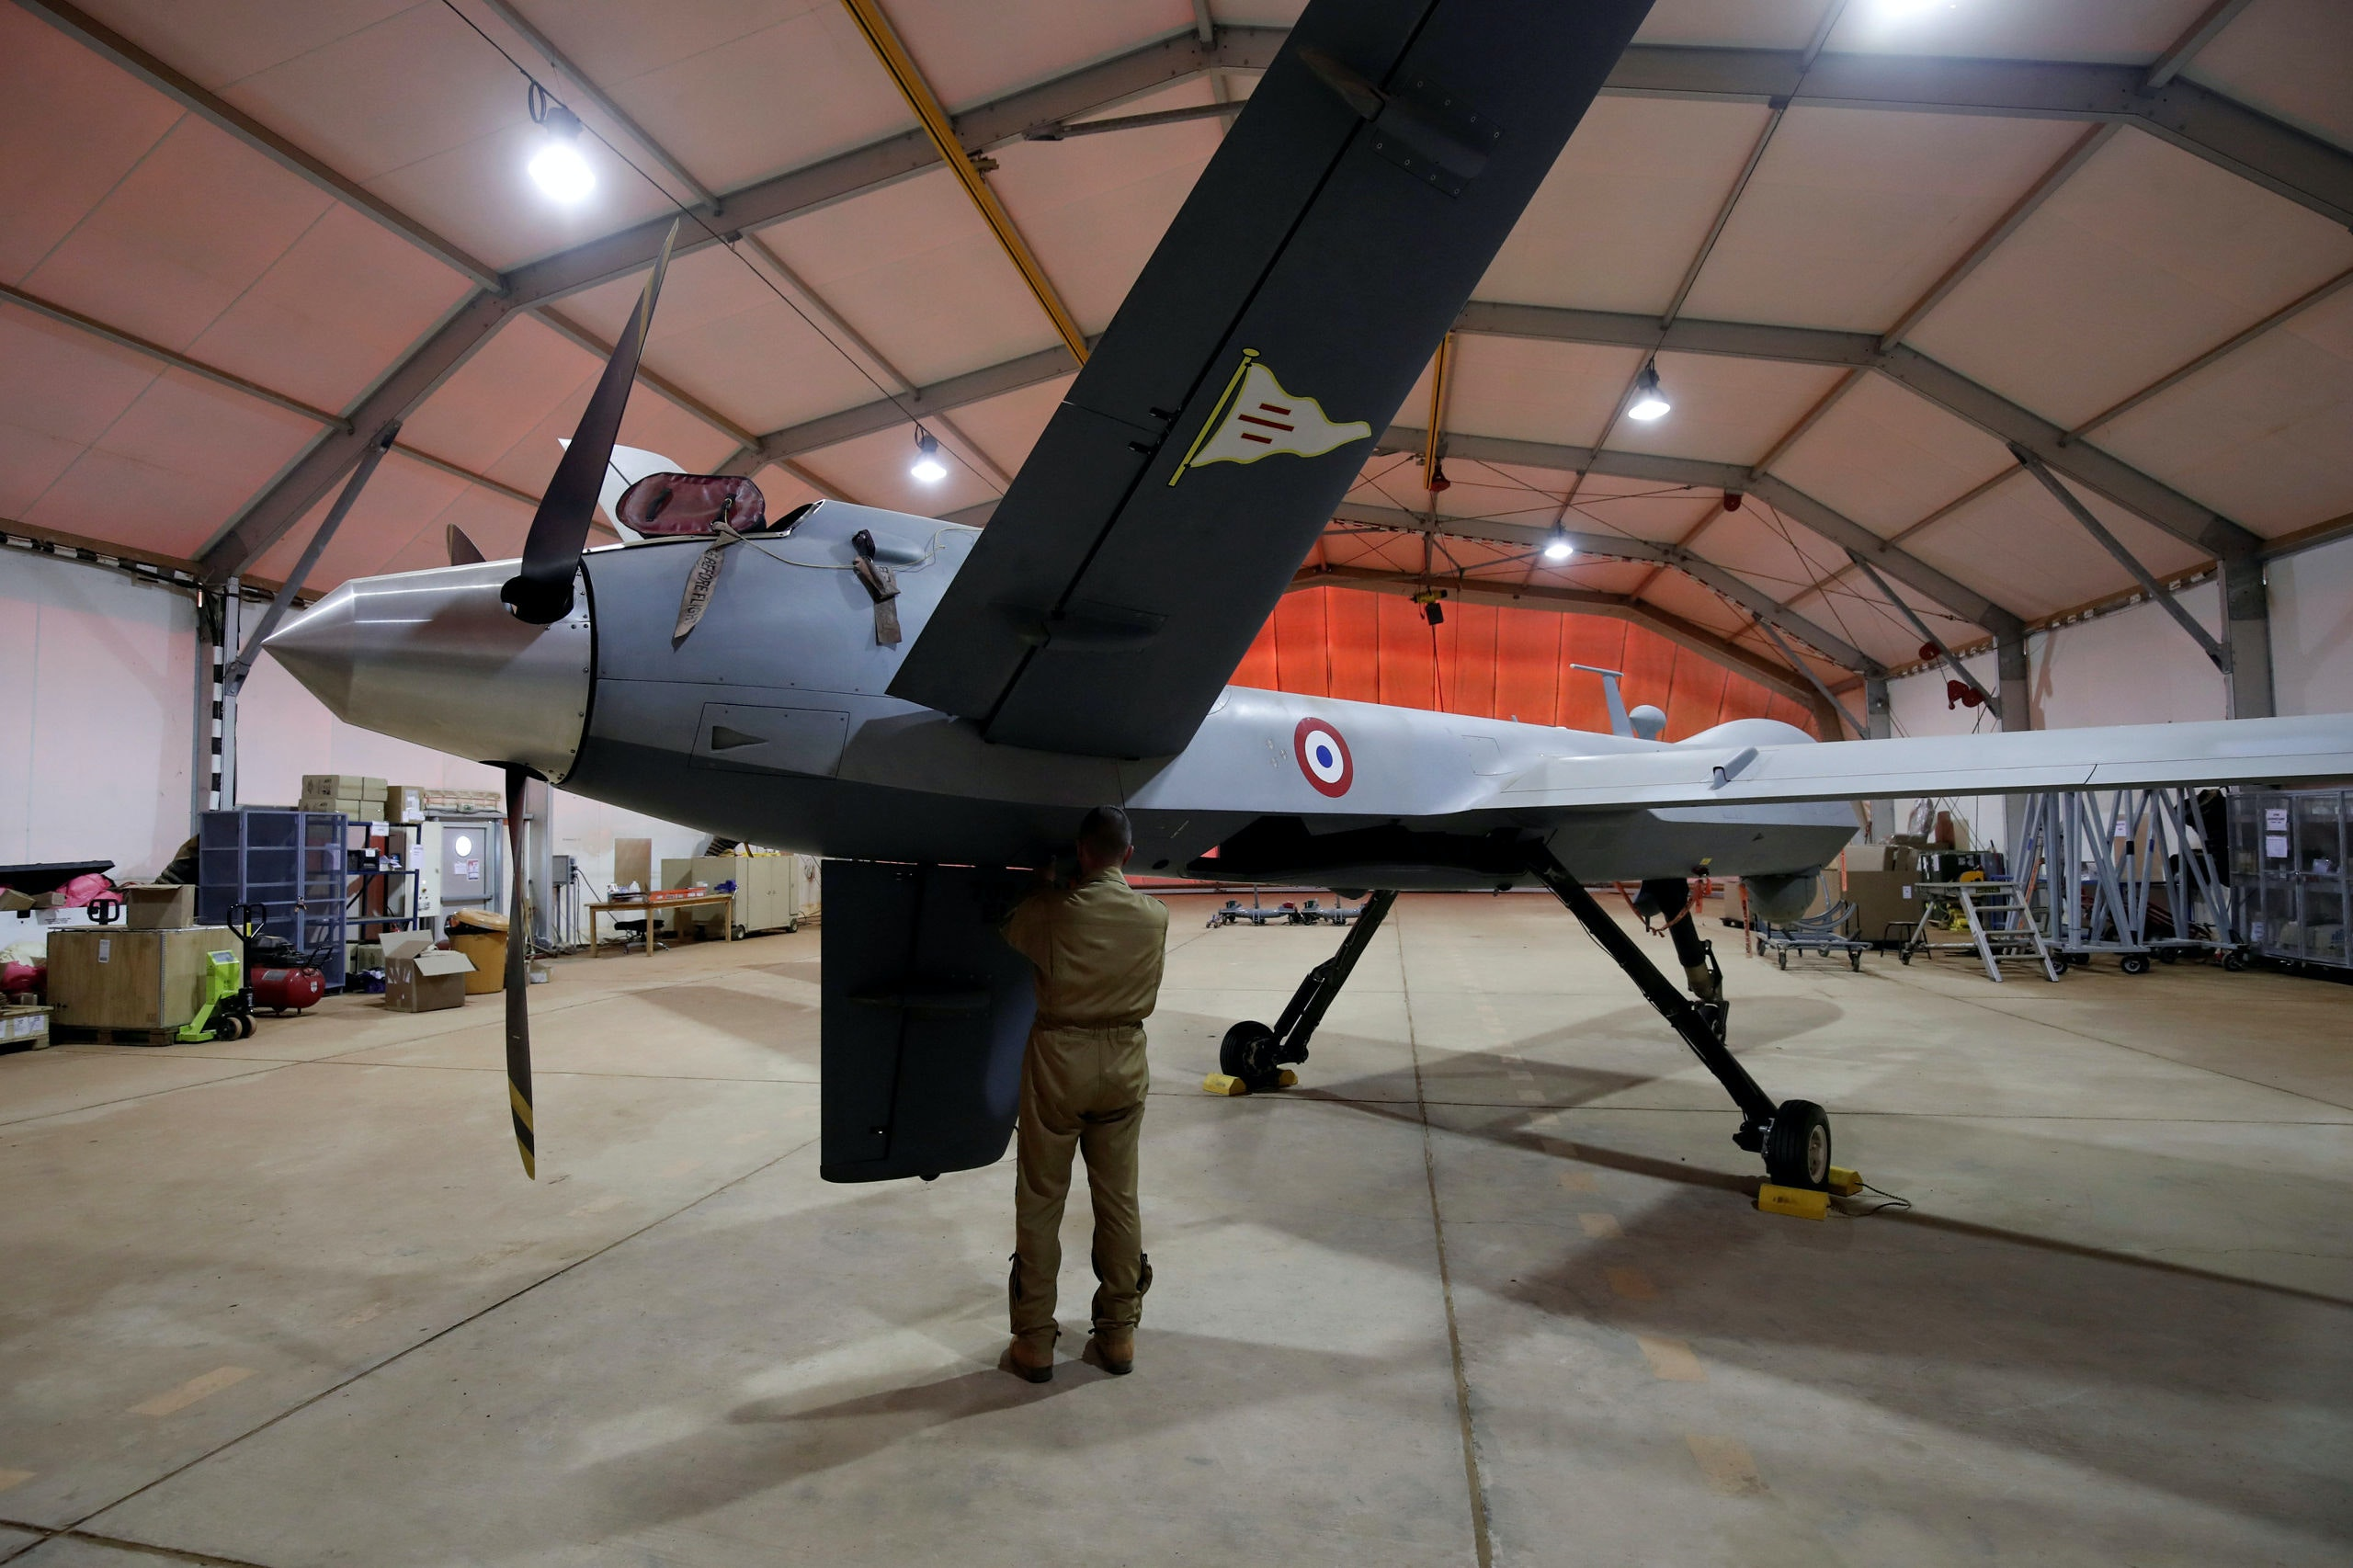 A French soldier of the regional anti-insurgent Operation Barkhane stands in front of a General Atomics MQ-9 Reaper drone version Block 1 in Niamey, Niger, October 21, 2017. REUTERS/Benoit Tessier